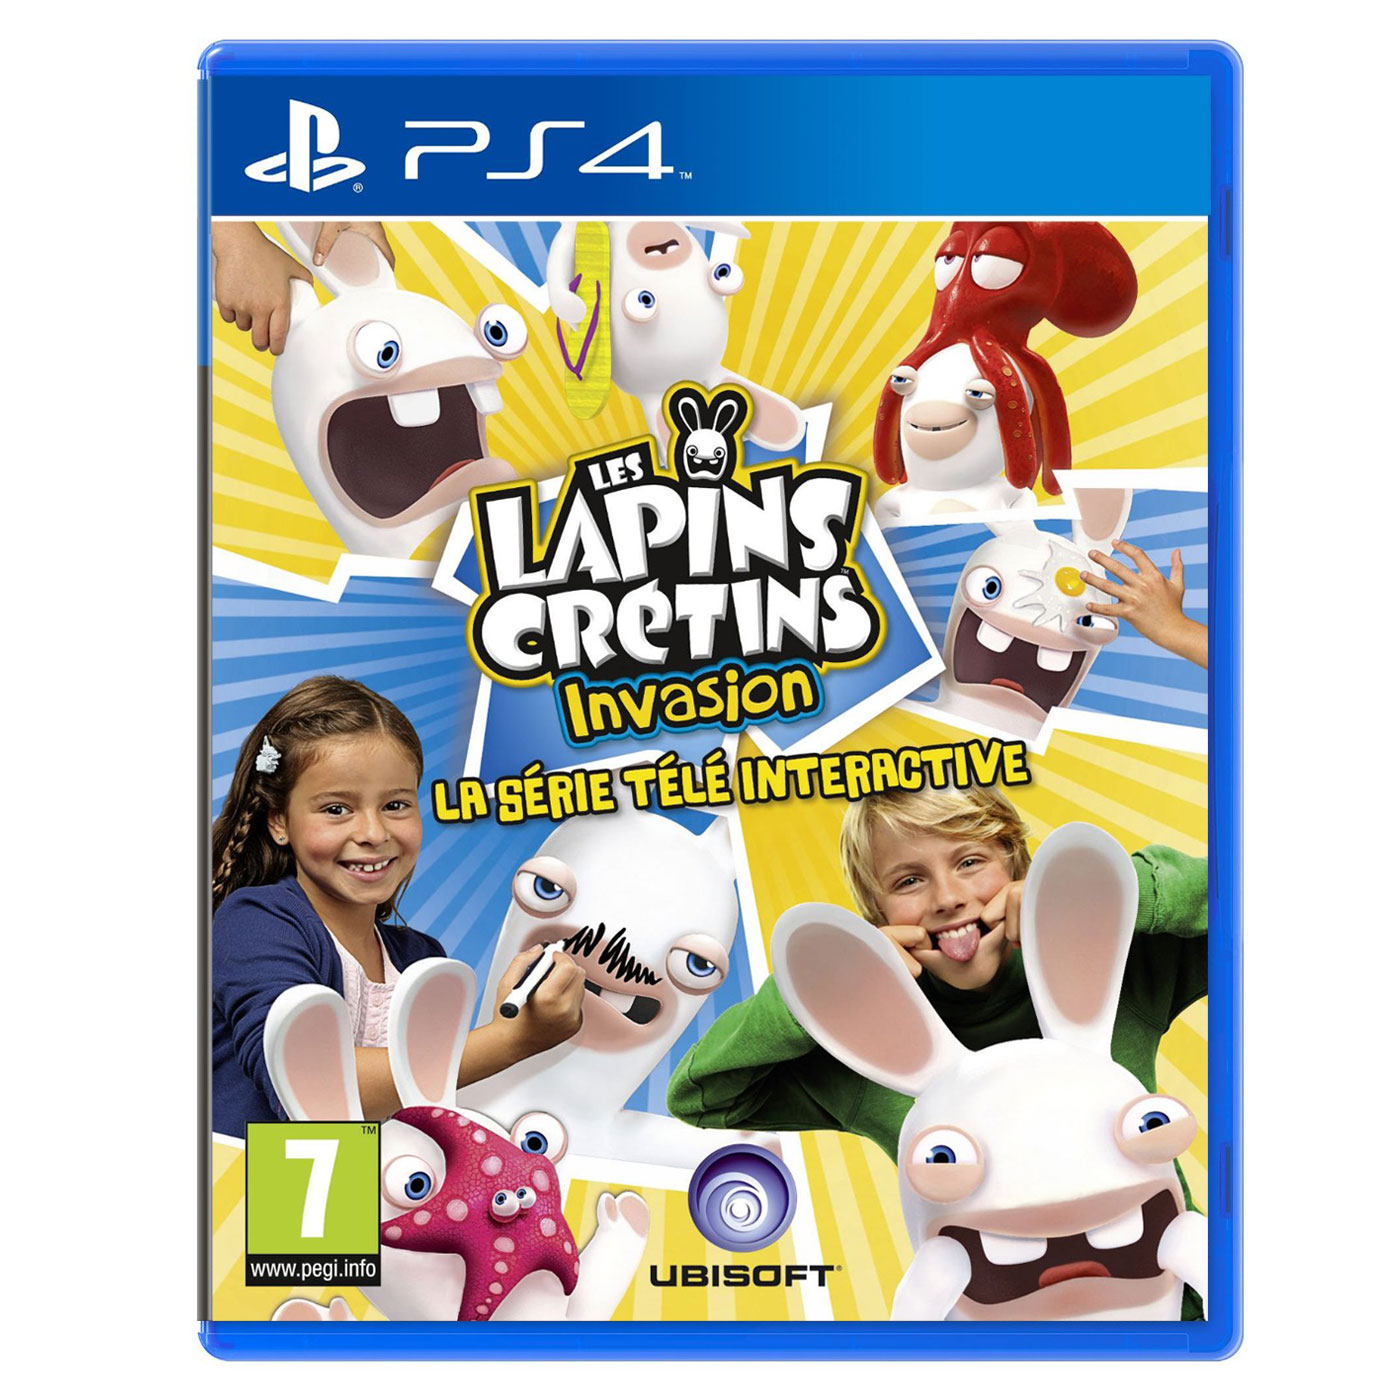 lapins cr tins invasion la s rie t l interactive ps4 jeux ps4 ubisoft sur. Black Bedroom Furniture Sets. Home Design Ideas